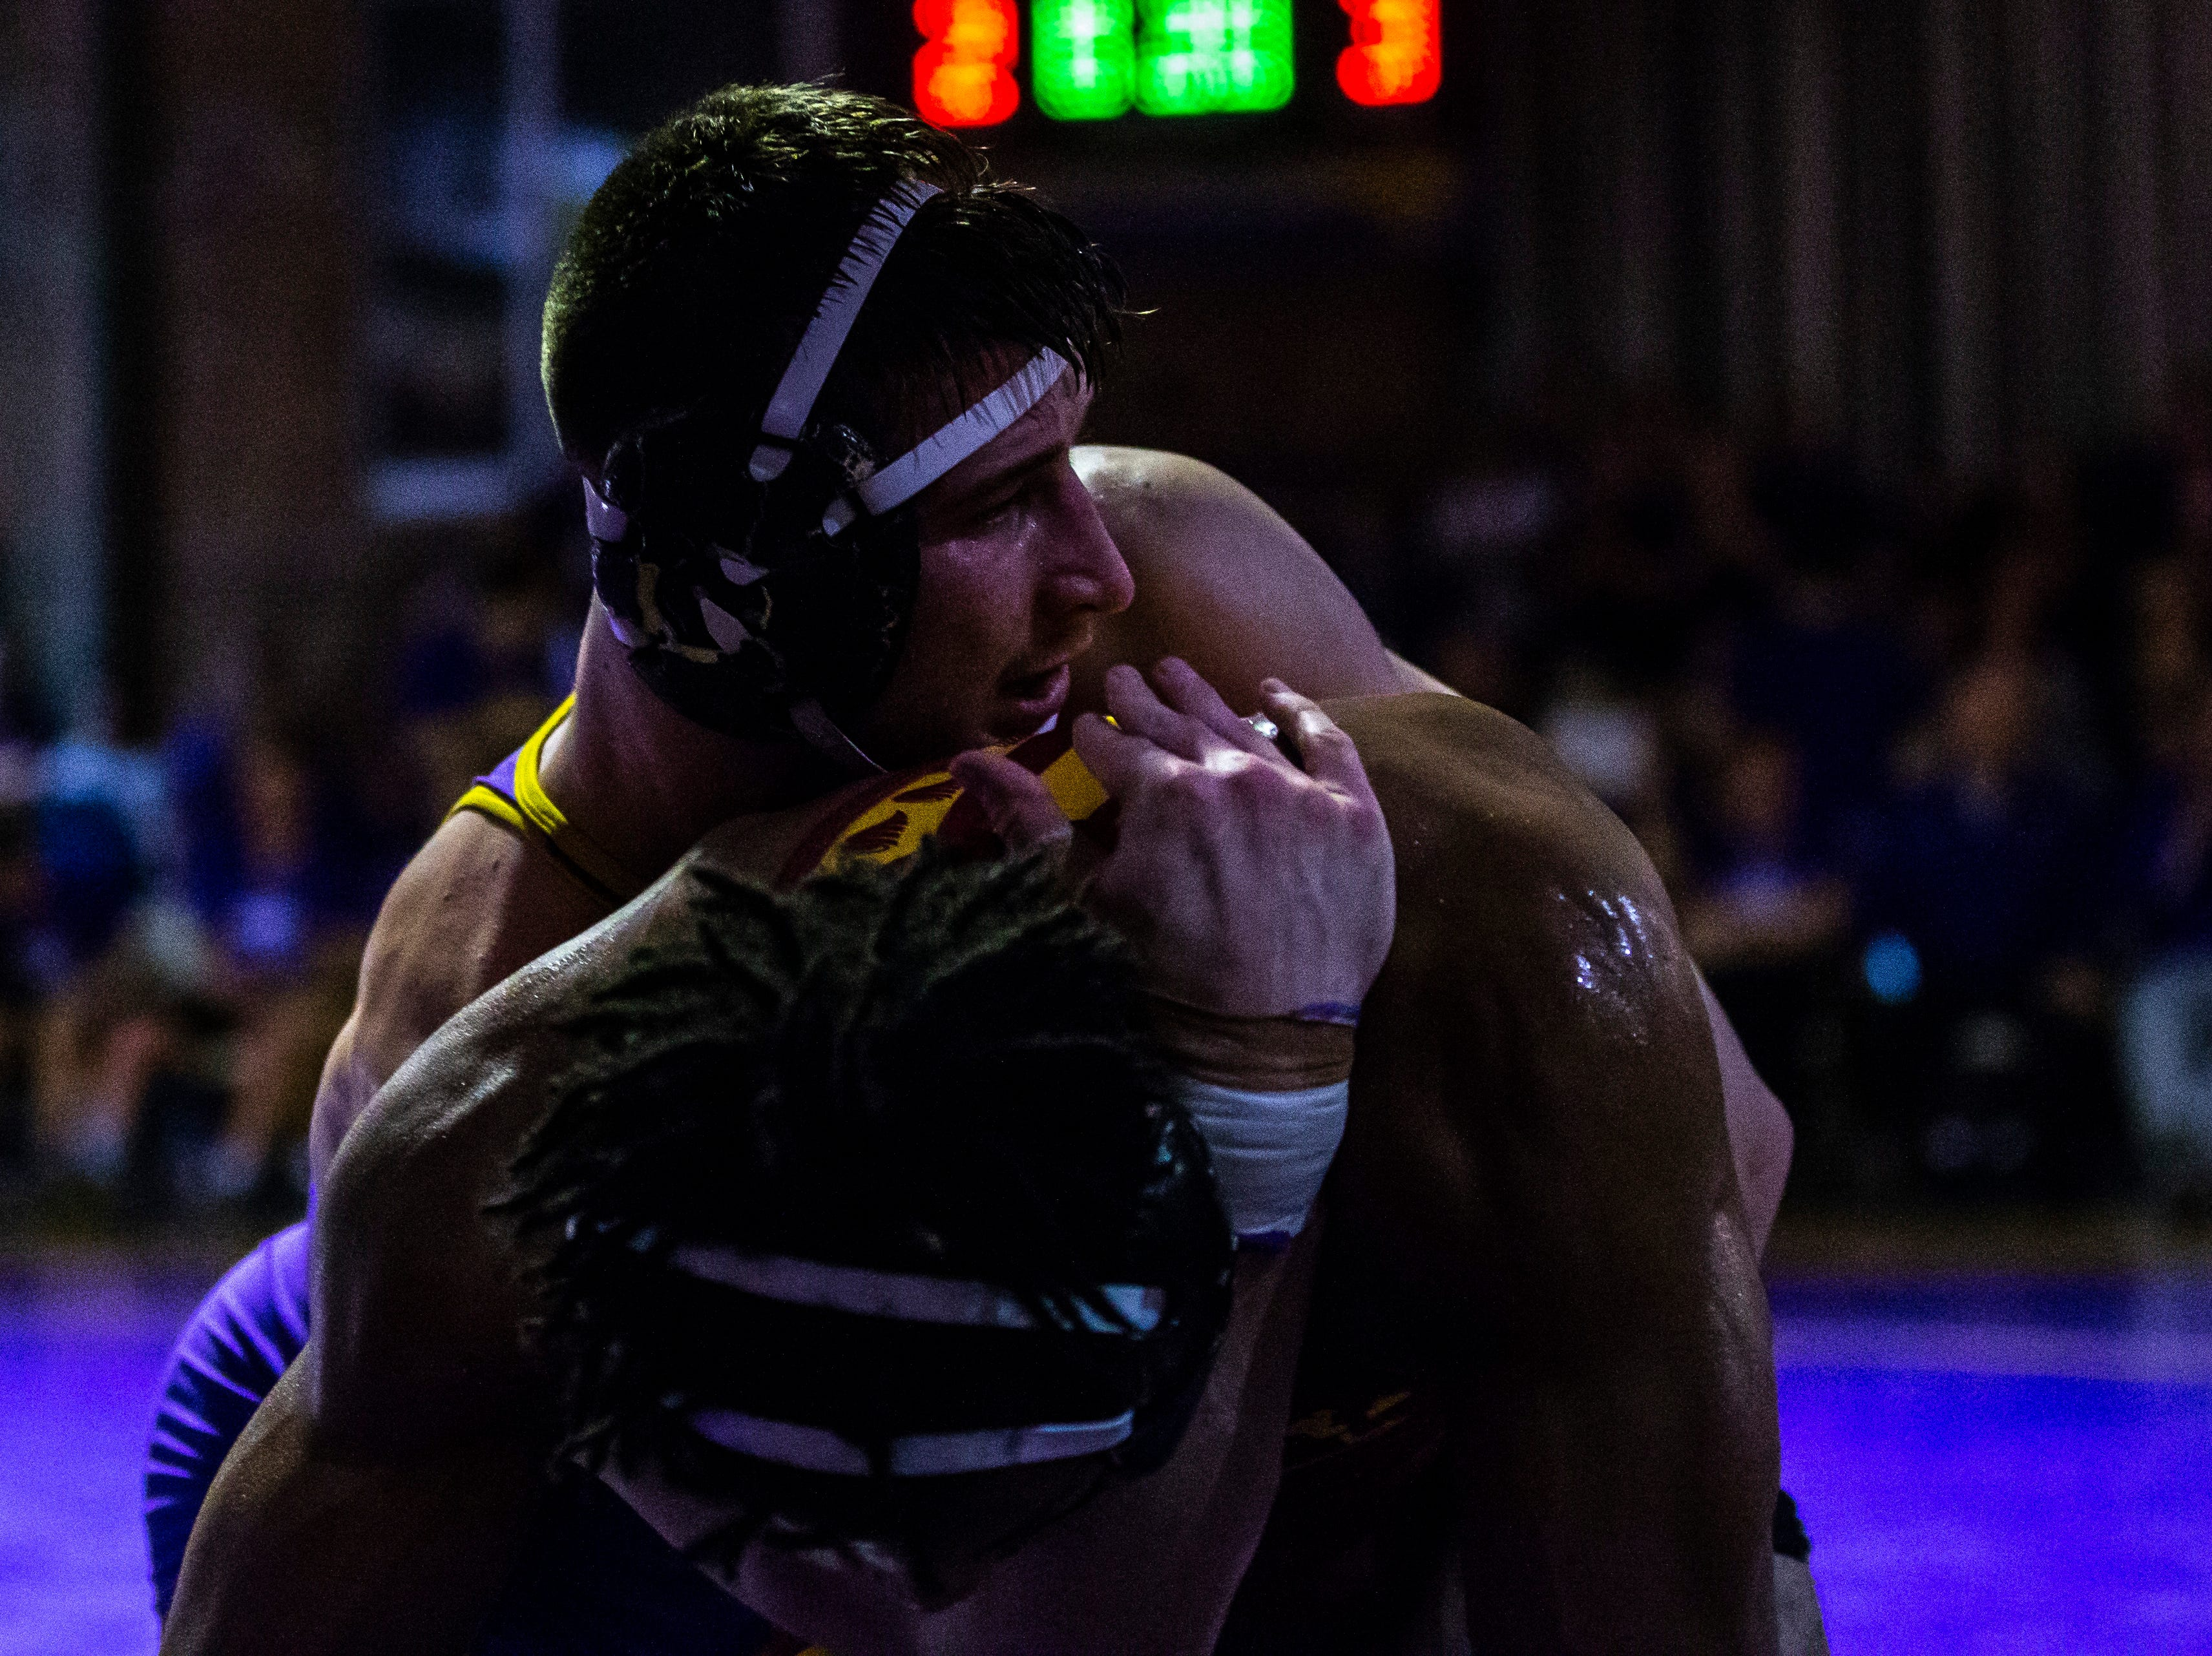 Iowa State's Sam Colbray wrestles Northern Iowa's Drew Foster at 184 during a NCAA Big 12 wrestling dual on Thursday, Feb. 21, 2019 at the West Gymnasium in Cedar Falls, Iowa.